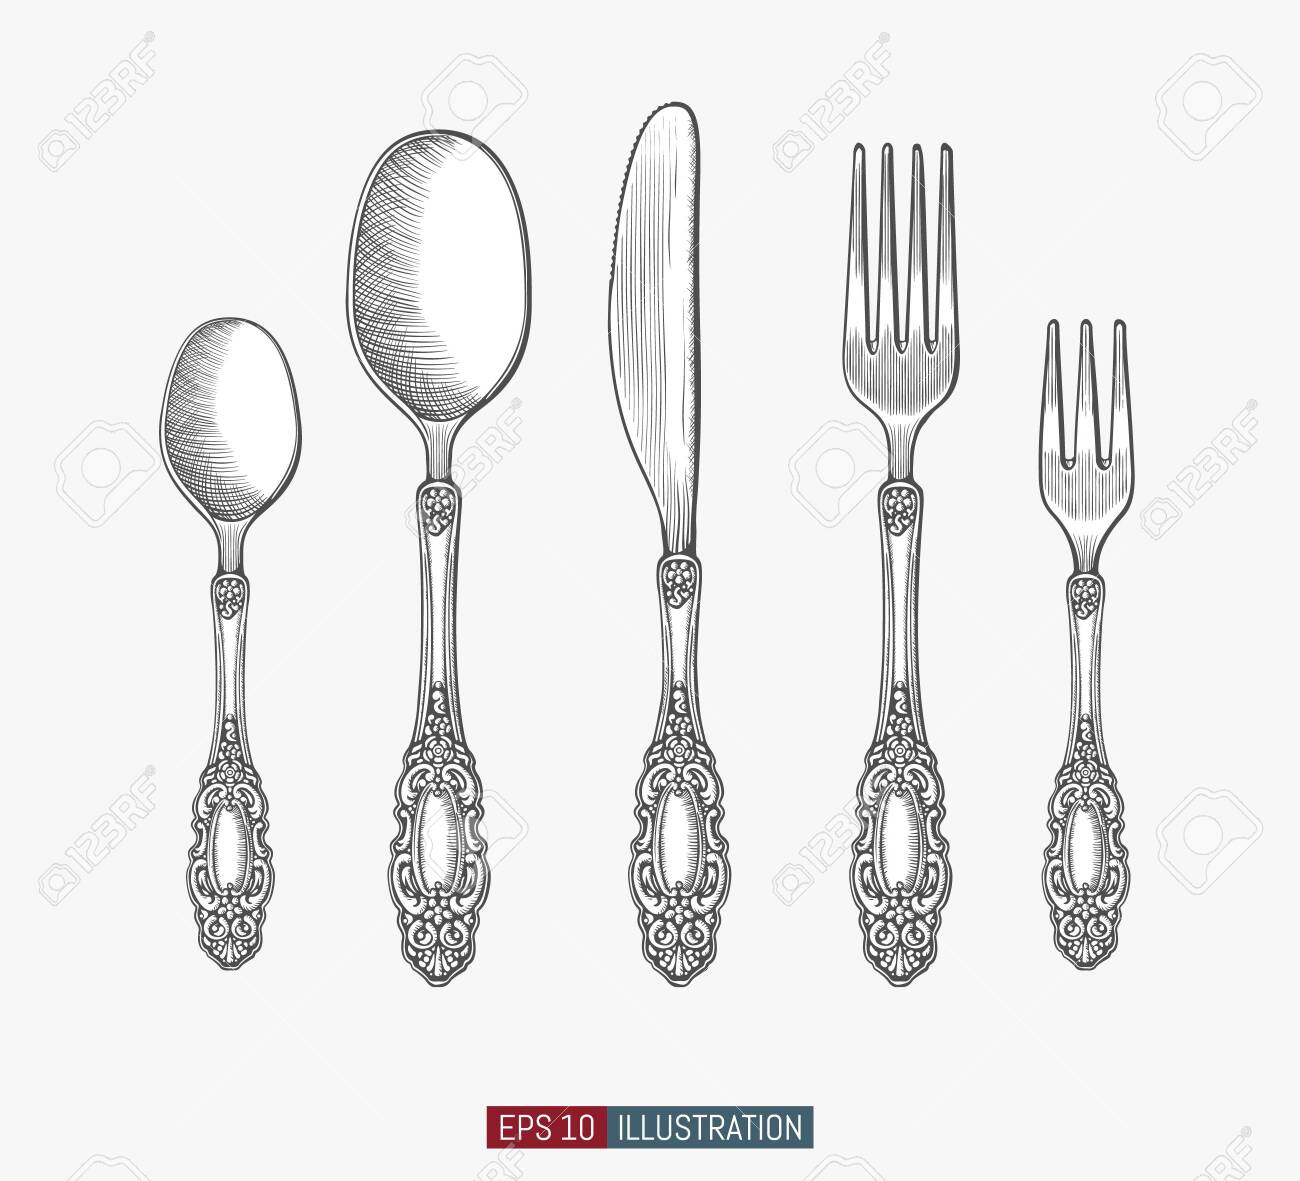 Hand drawn spoons, forks and knifes. Engraved style vector illustration. Elements for your design works. - 153687066